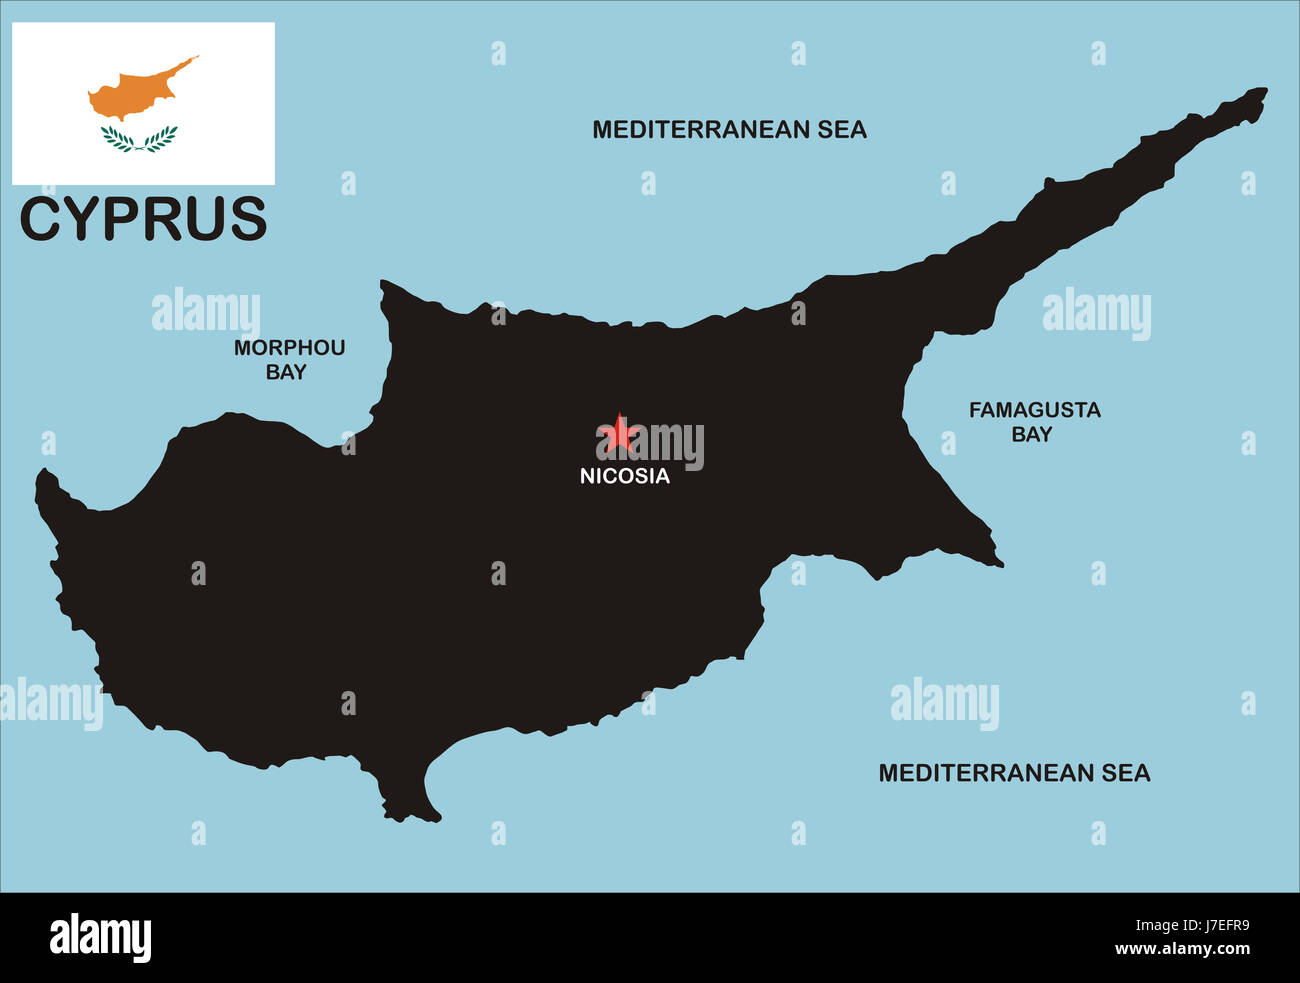 Cyprus map atlas map of the world political illustration flag cyprus map atlas map of the world political illustration flag country cyprus gumiabroncs Gallery